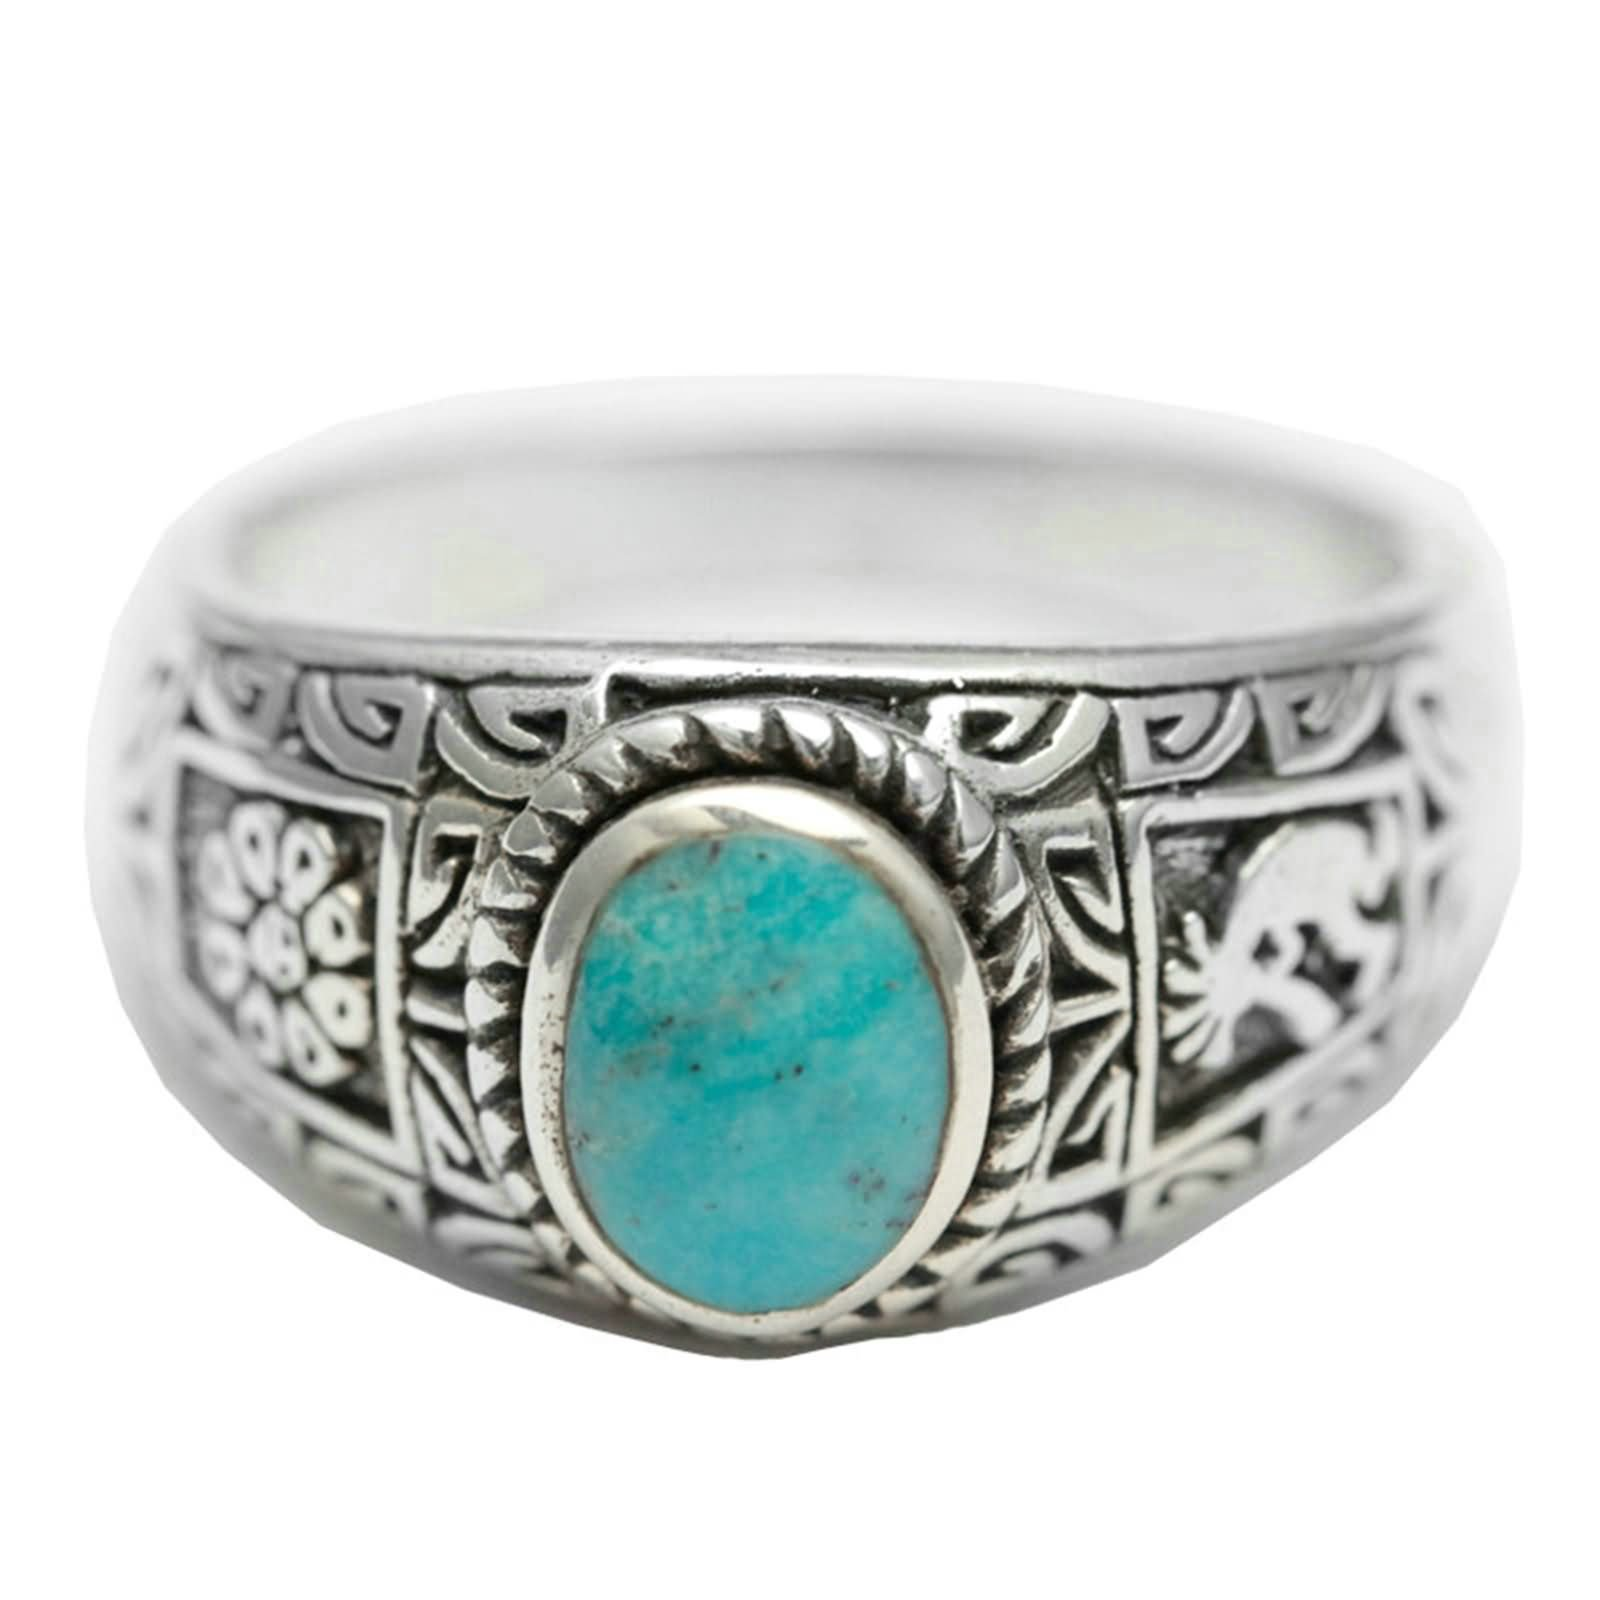 Bishilin Rings for Men Silver Plated Oval Turquoise with Totem Partner Rings Silver Size 12